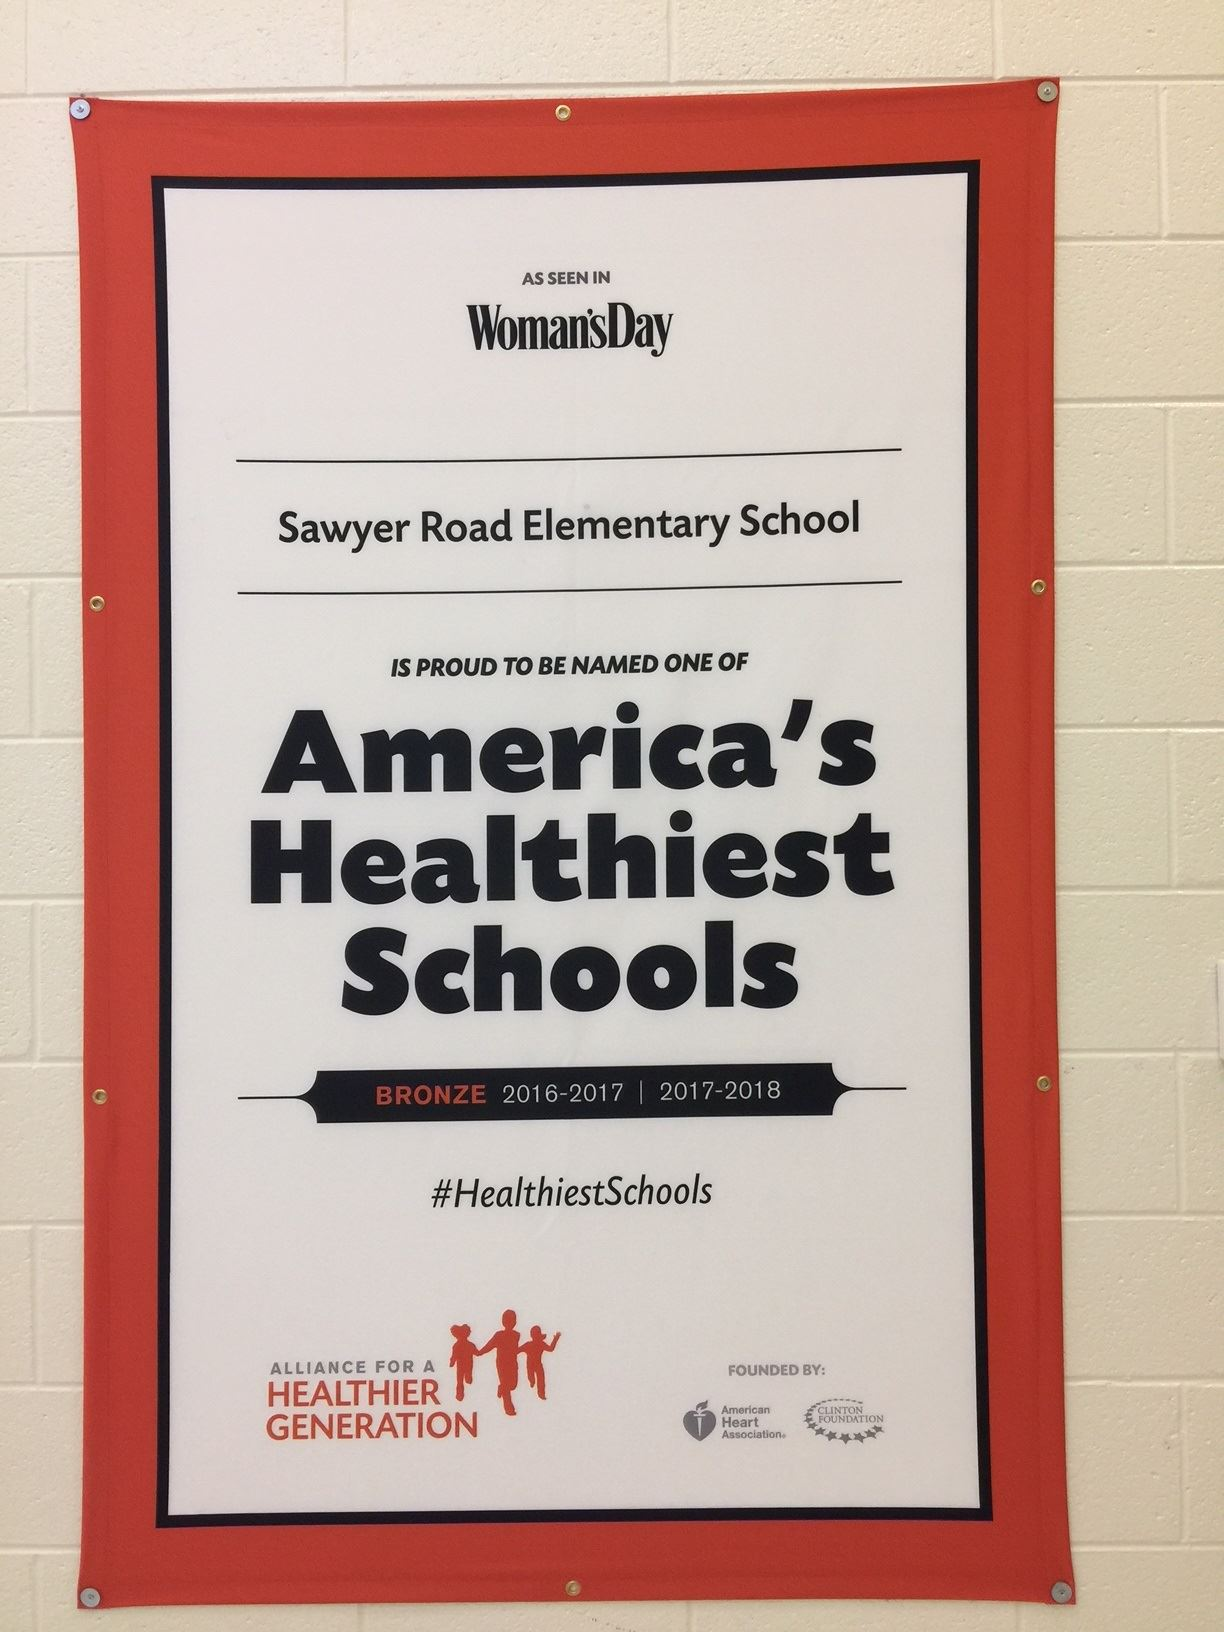 Sawyer Road recognized as one America's Healthiest Schools